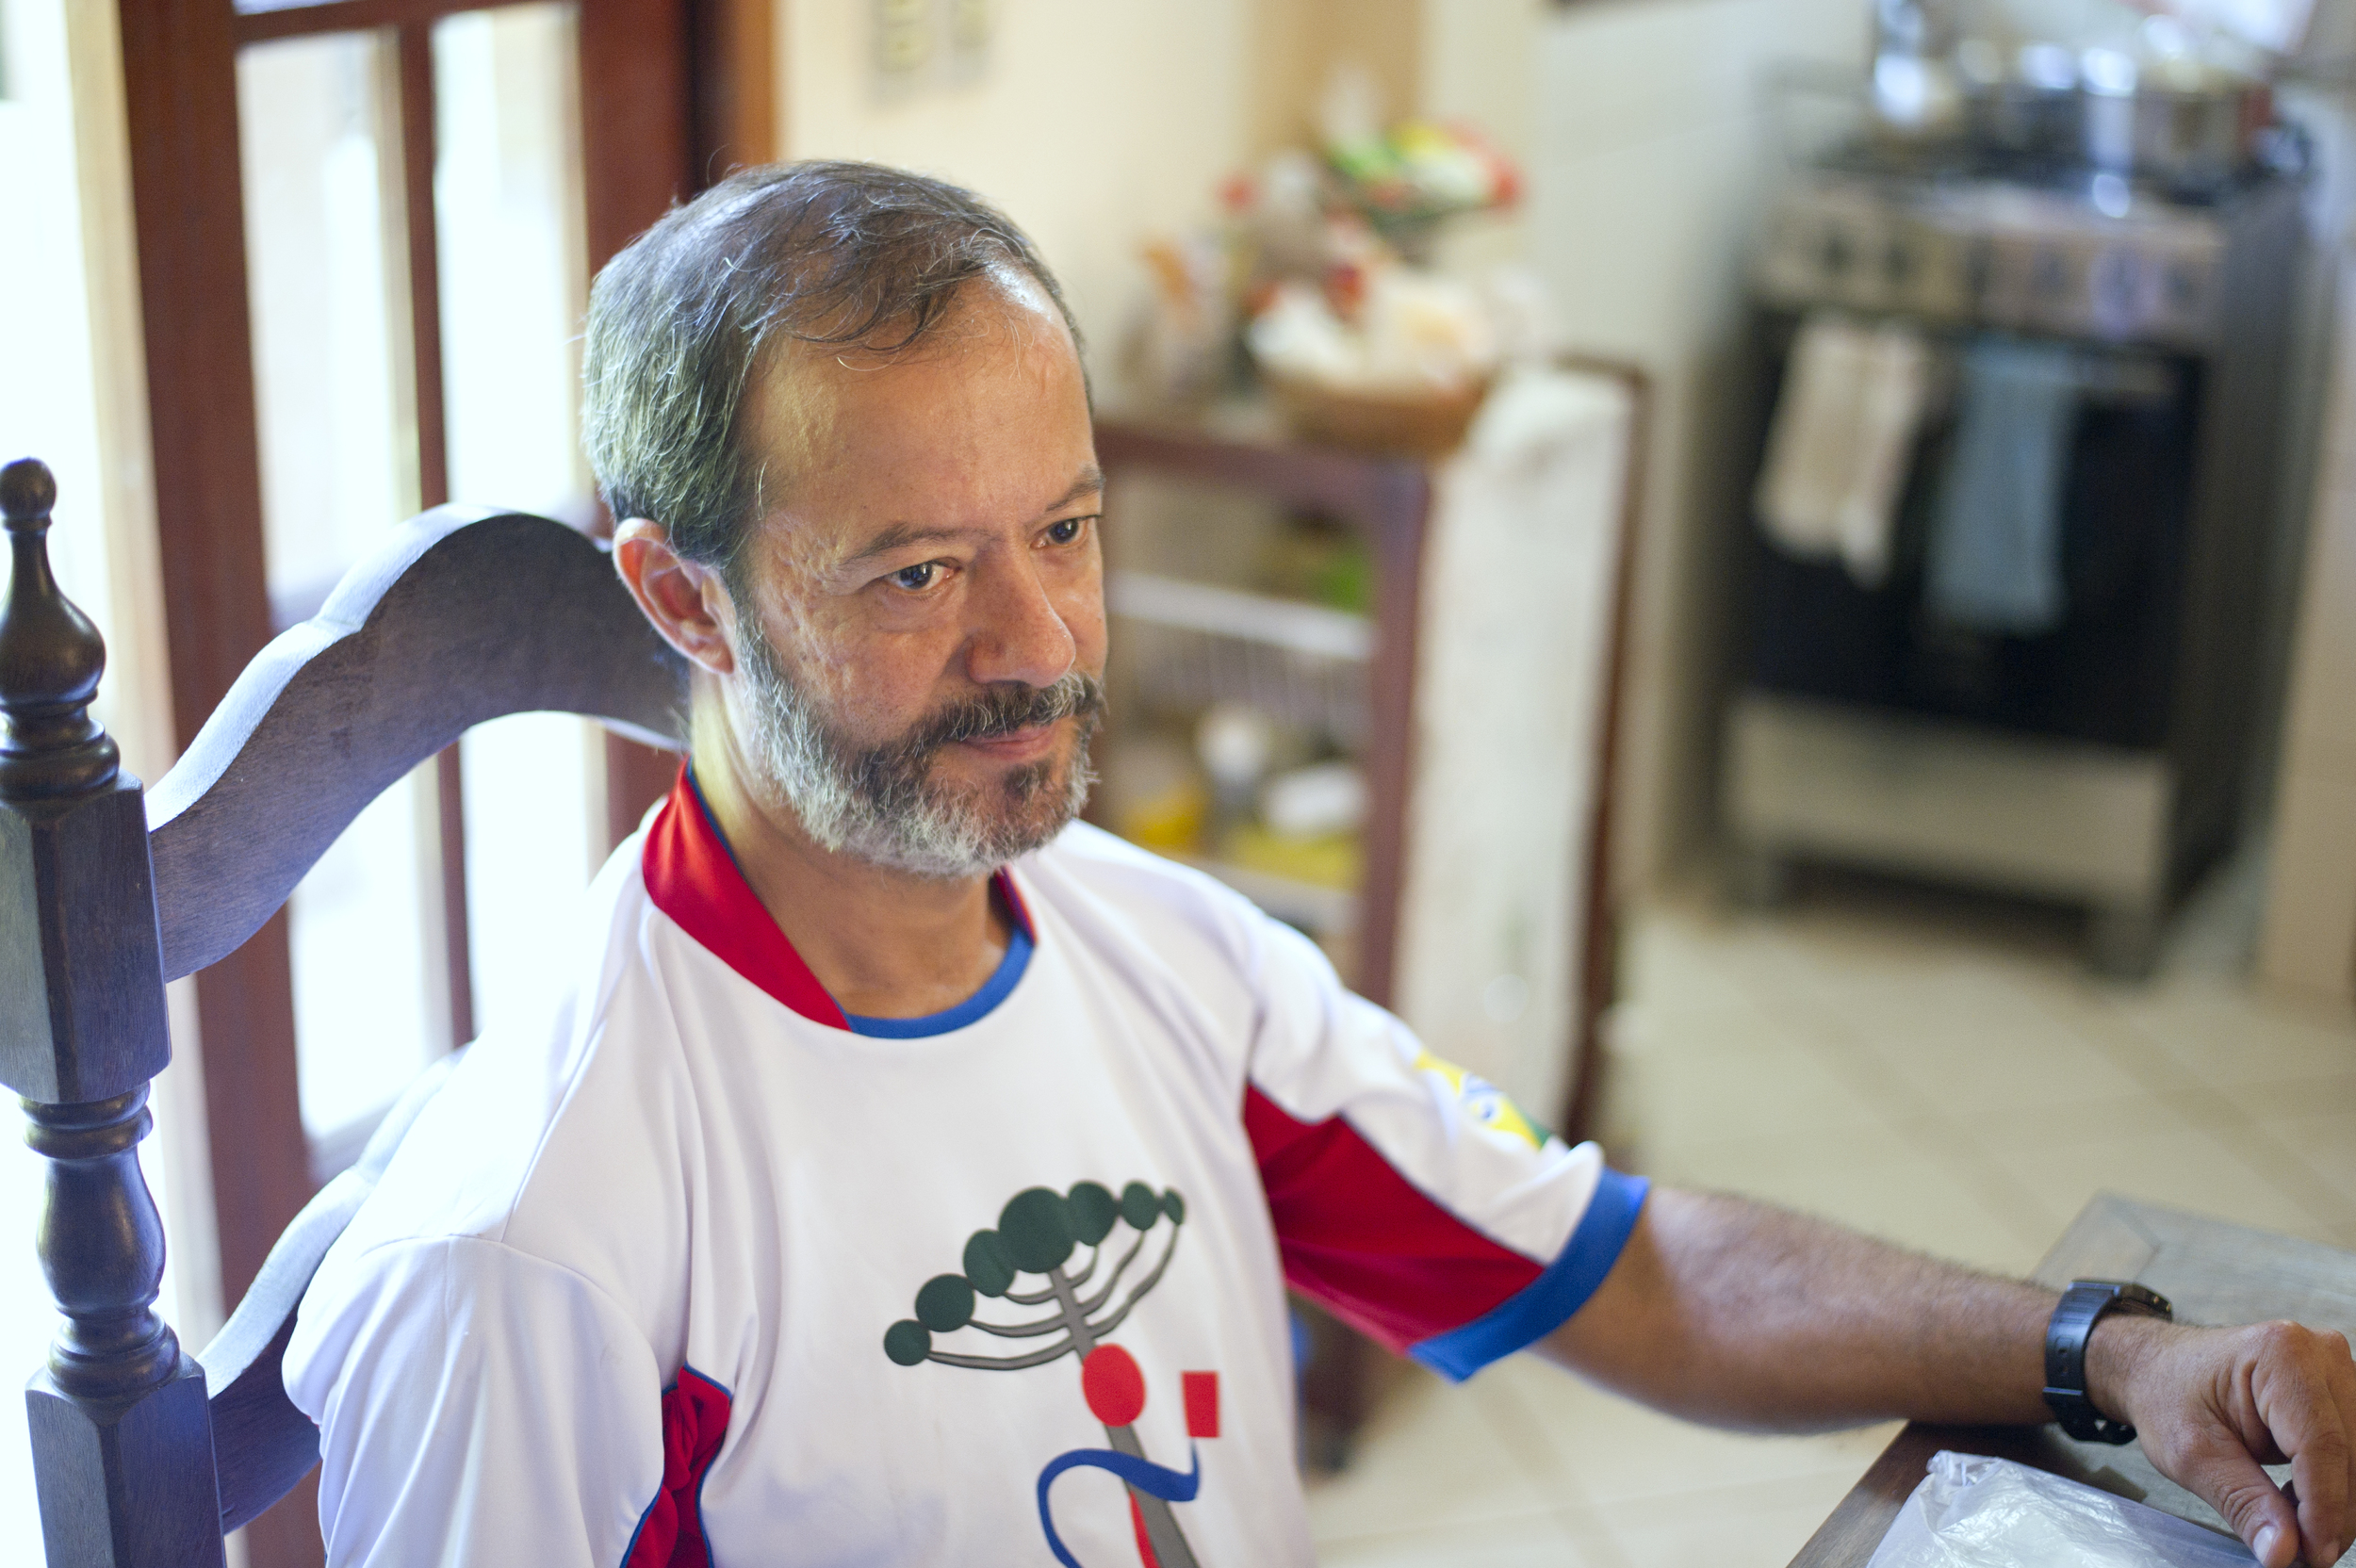 Brito's husband Elias Serafim discusses his feelings about the threat of eviction for a proposed Olympic roadway in his home in Vila Autodromo in Rio de Janeiro, Brazil.